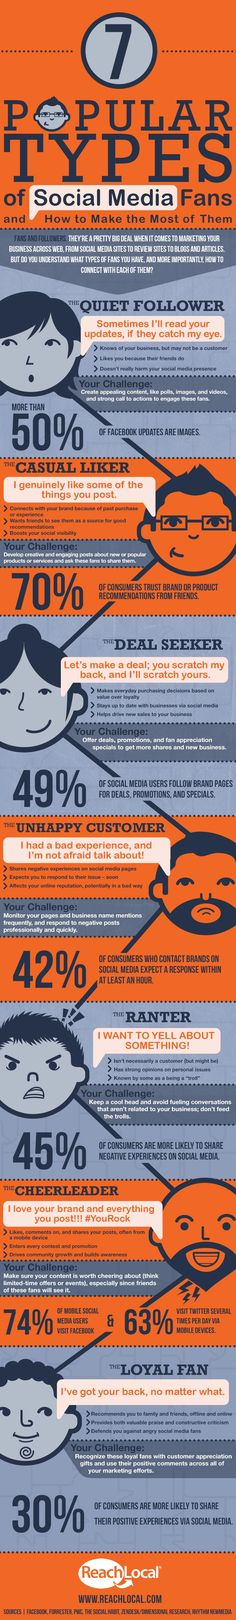 7 Types of Social Media Personas and how to connect  #infographic #socialmedia